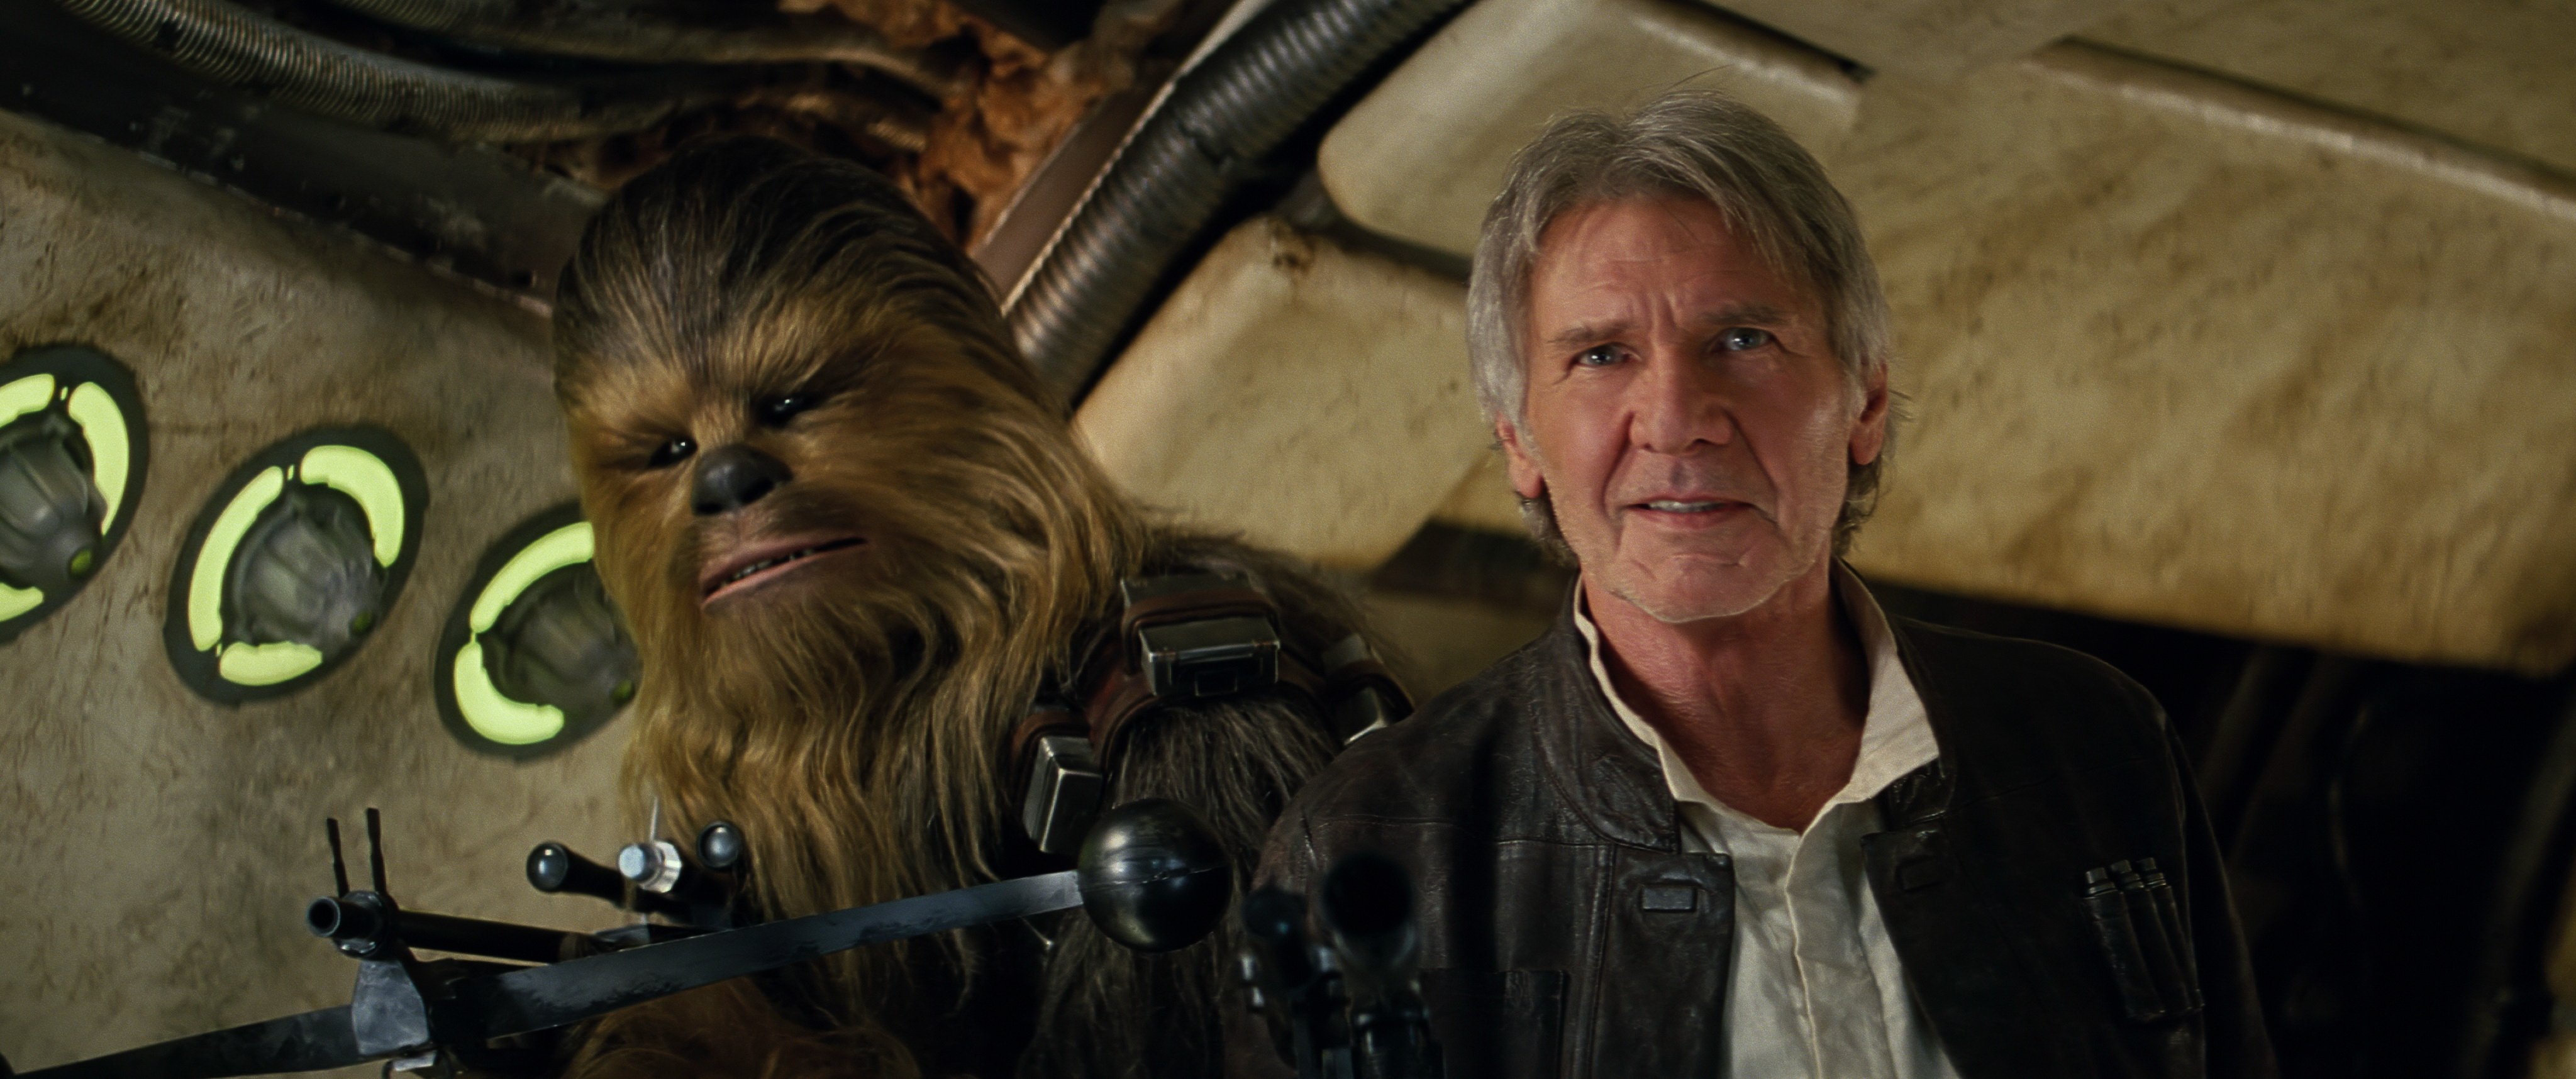 Star Wars: The Force Awakens..L to R: Chewbacca (Peter Mayhew) and Han Solo (Harrison Ford)..Ph: Film Frame..?Lucasfilm 2015